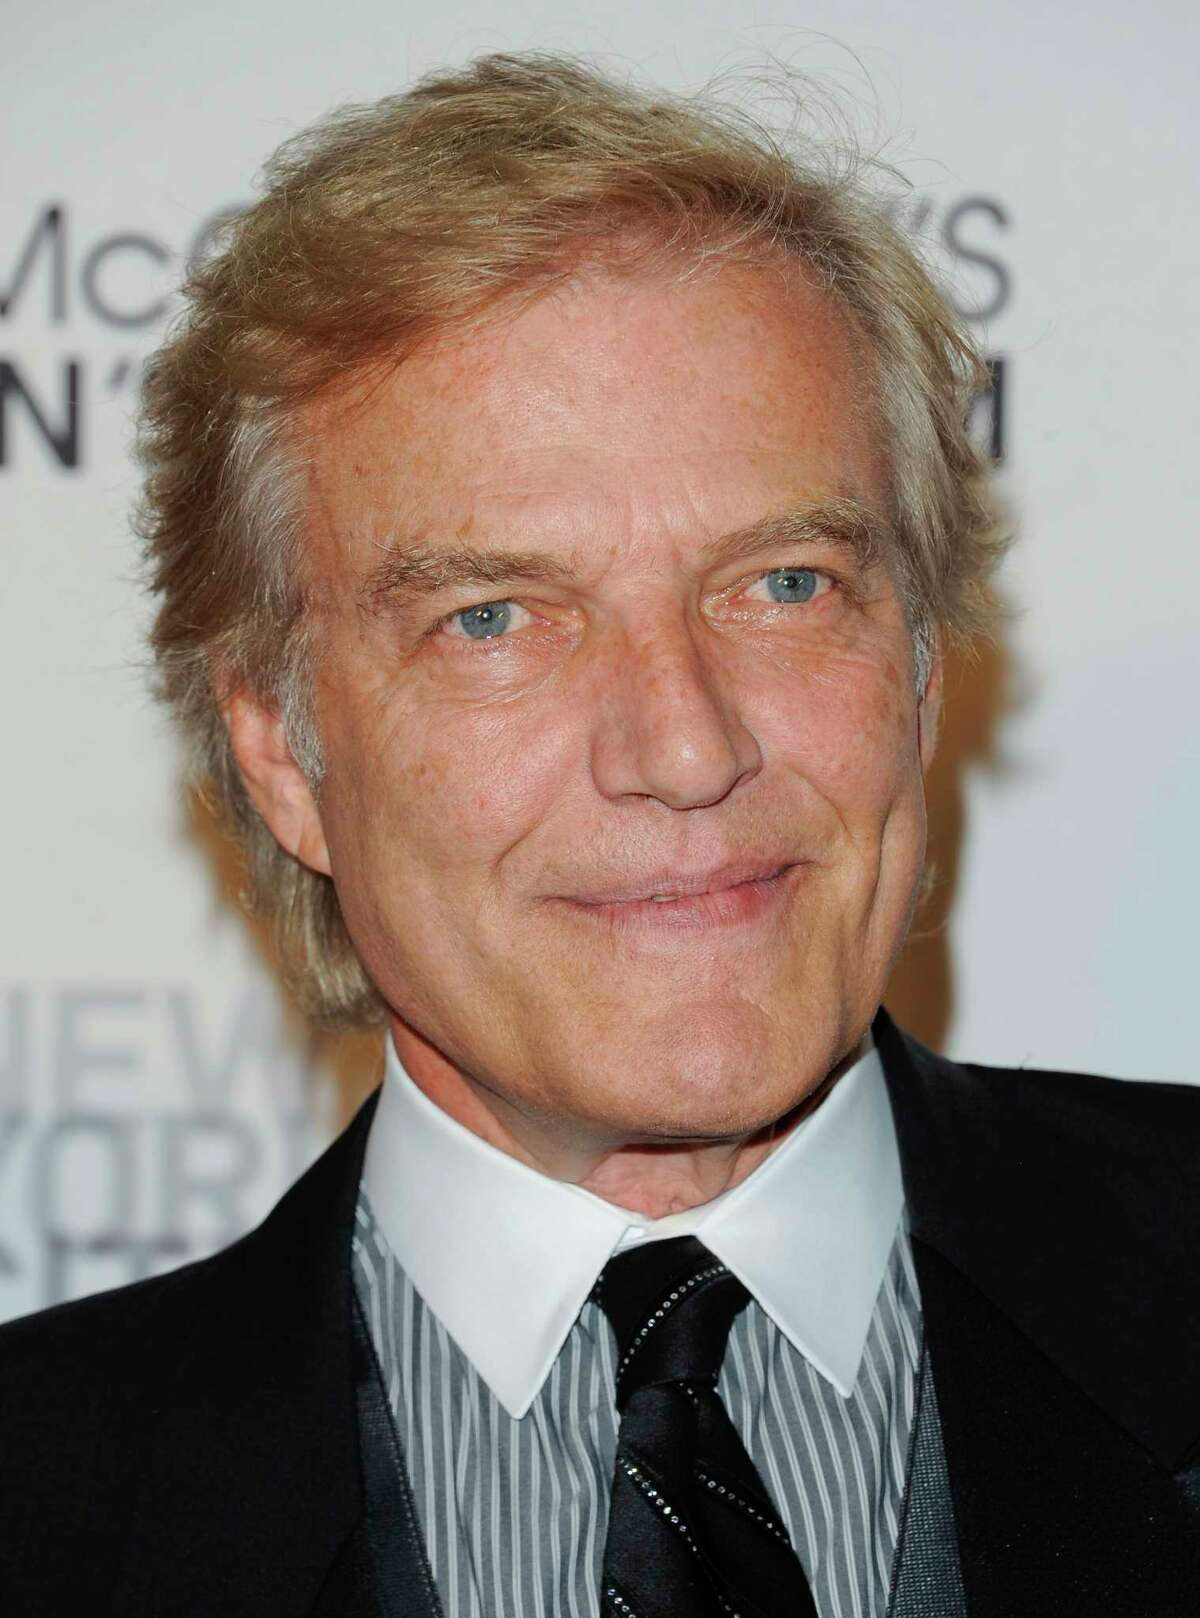 Choreographer Peter Martins attends a New York City Ballet's gala opening night in New York. Martins, who is on a leave during an investigation into sexual harrassment, is now being accused of verbal and physical abuse. (AP Photo/Evan Agostini, File)